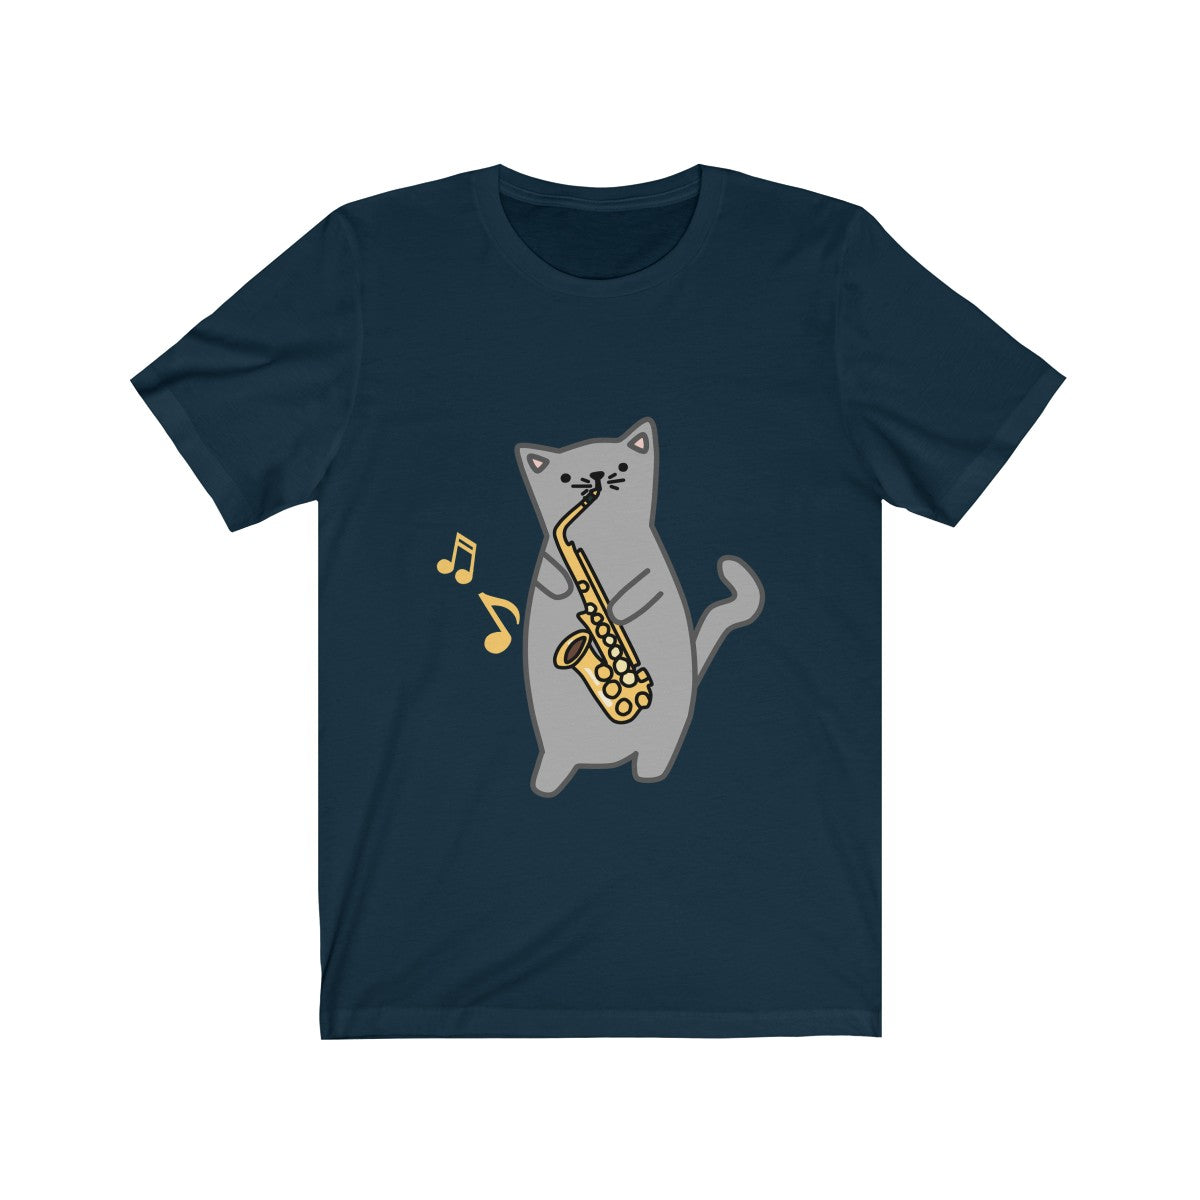 Jazz Lover Gift Idea - Unisex Jersey Short Sleeve Tee